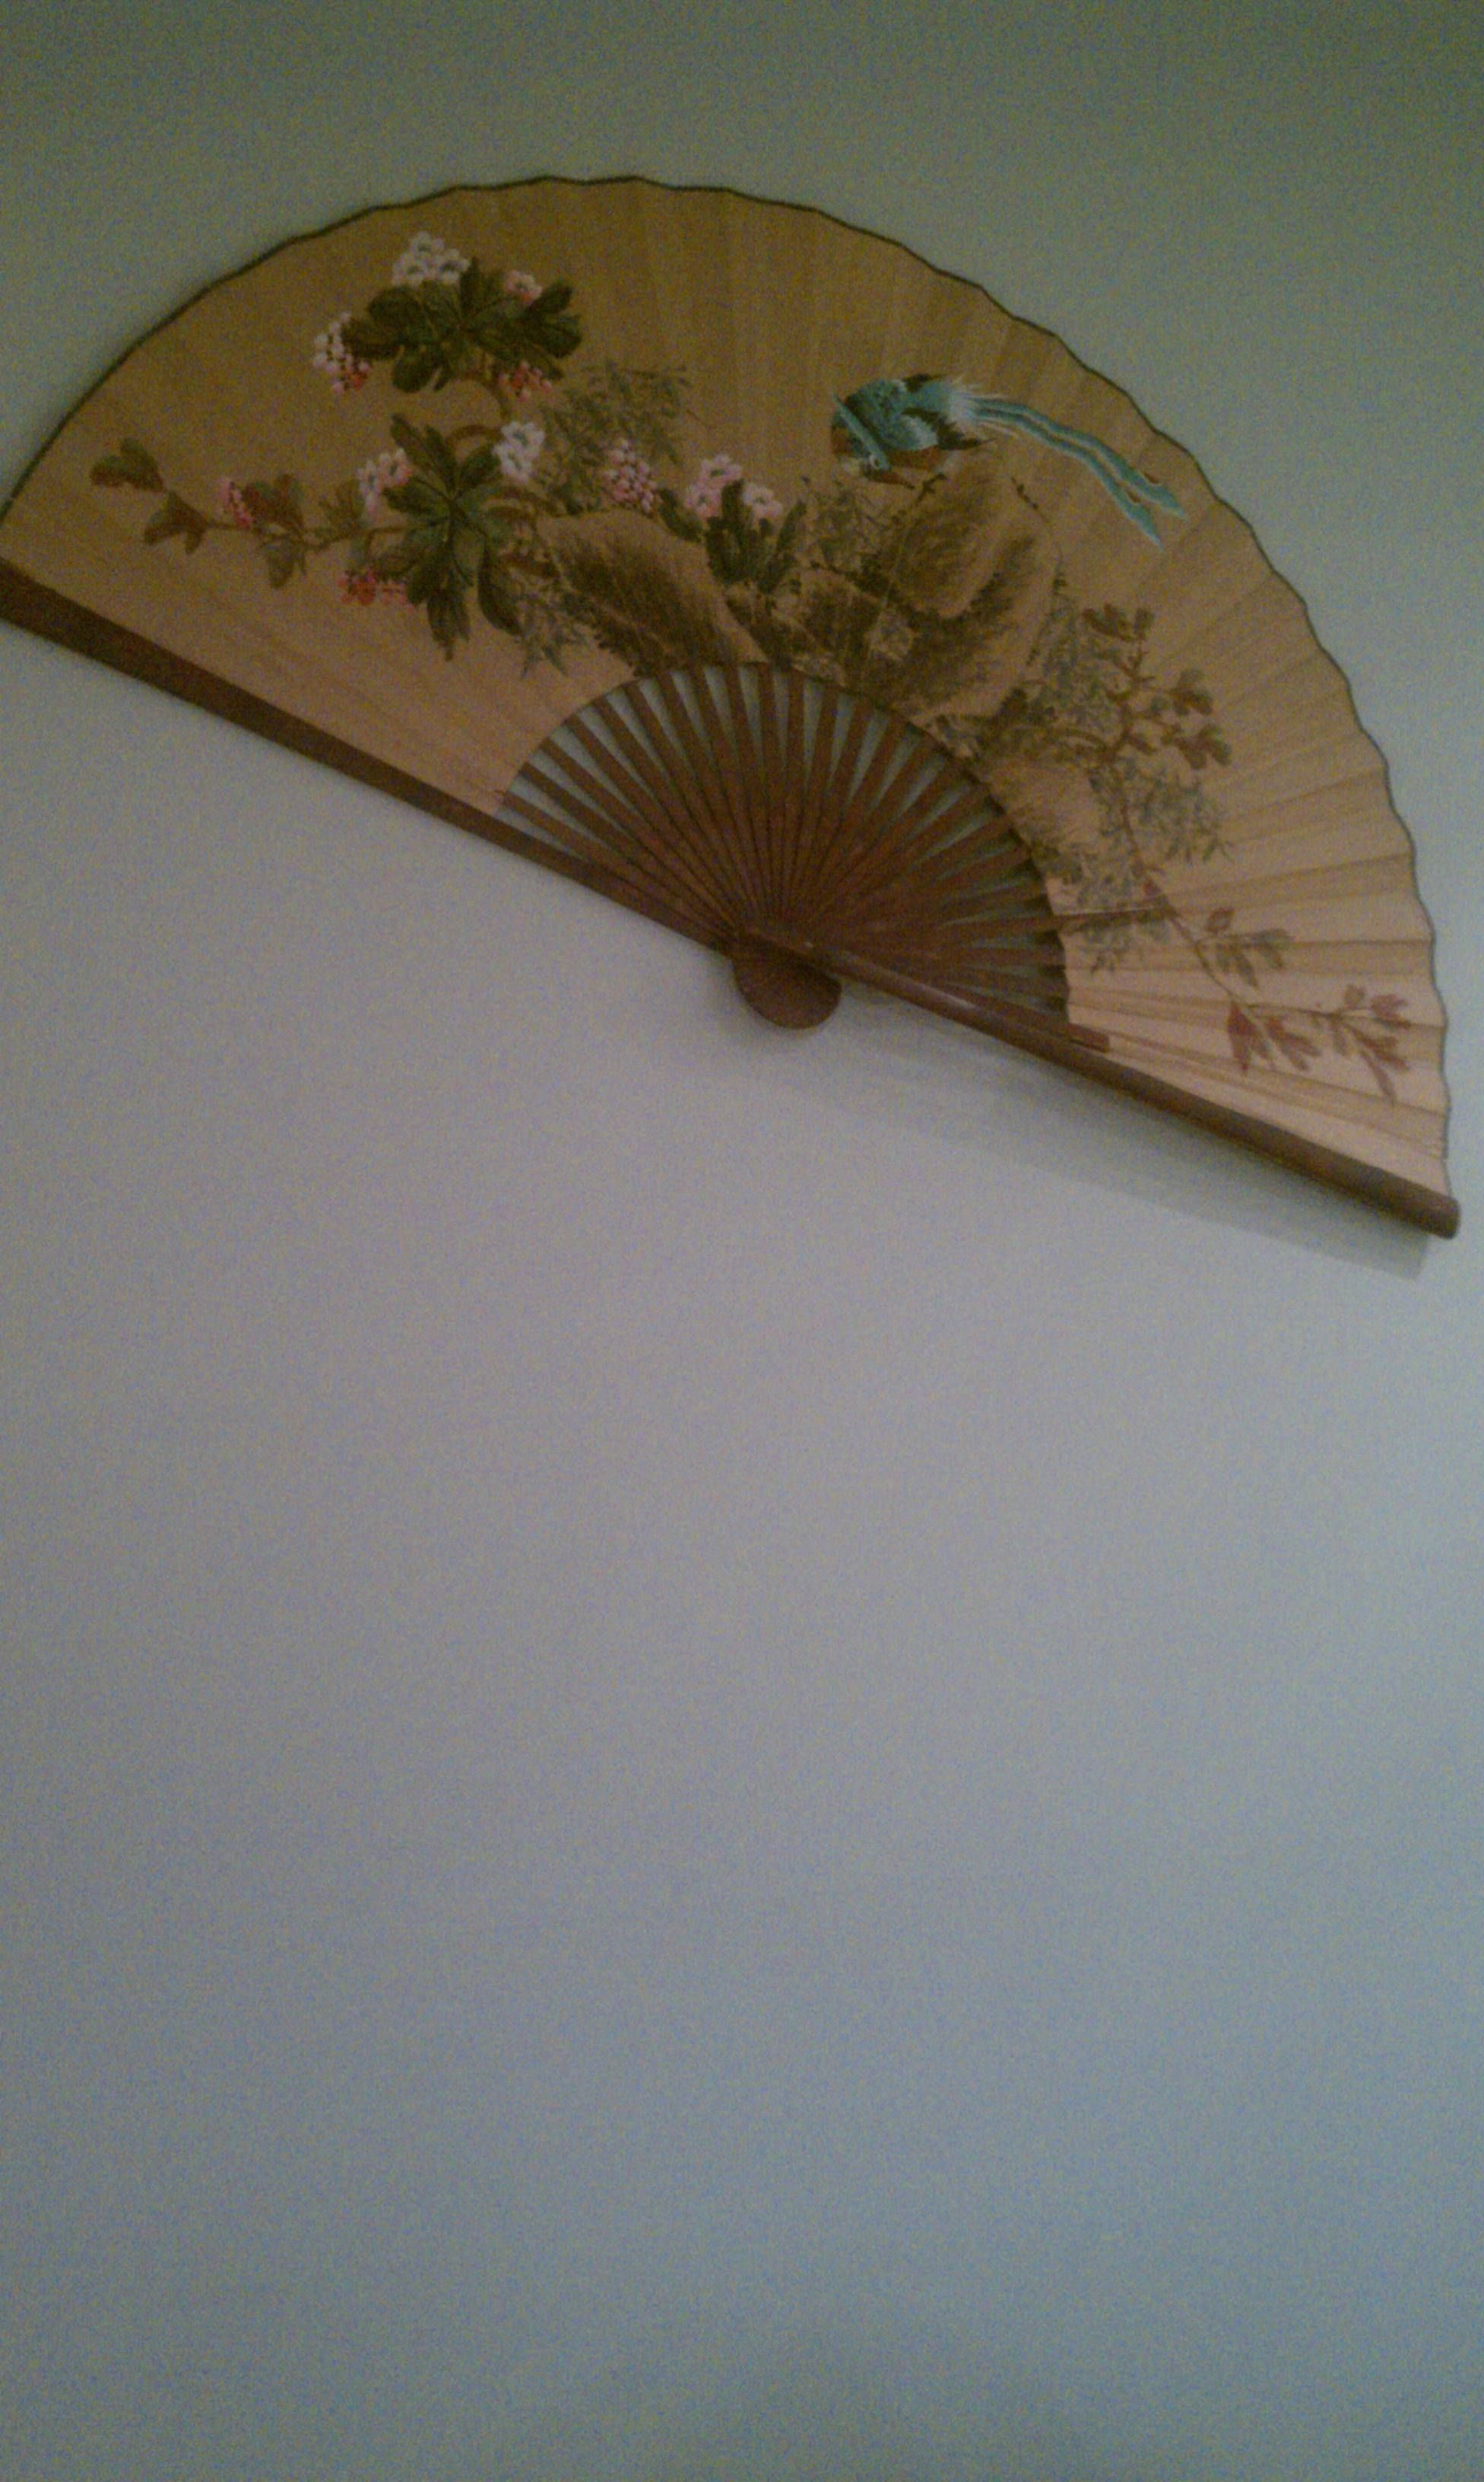 Giant Chinese Fans Make Great Wall Art Japanese Fan Japanese Art Chinese Fans